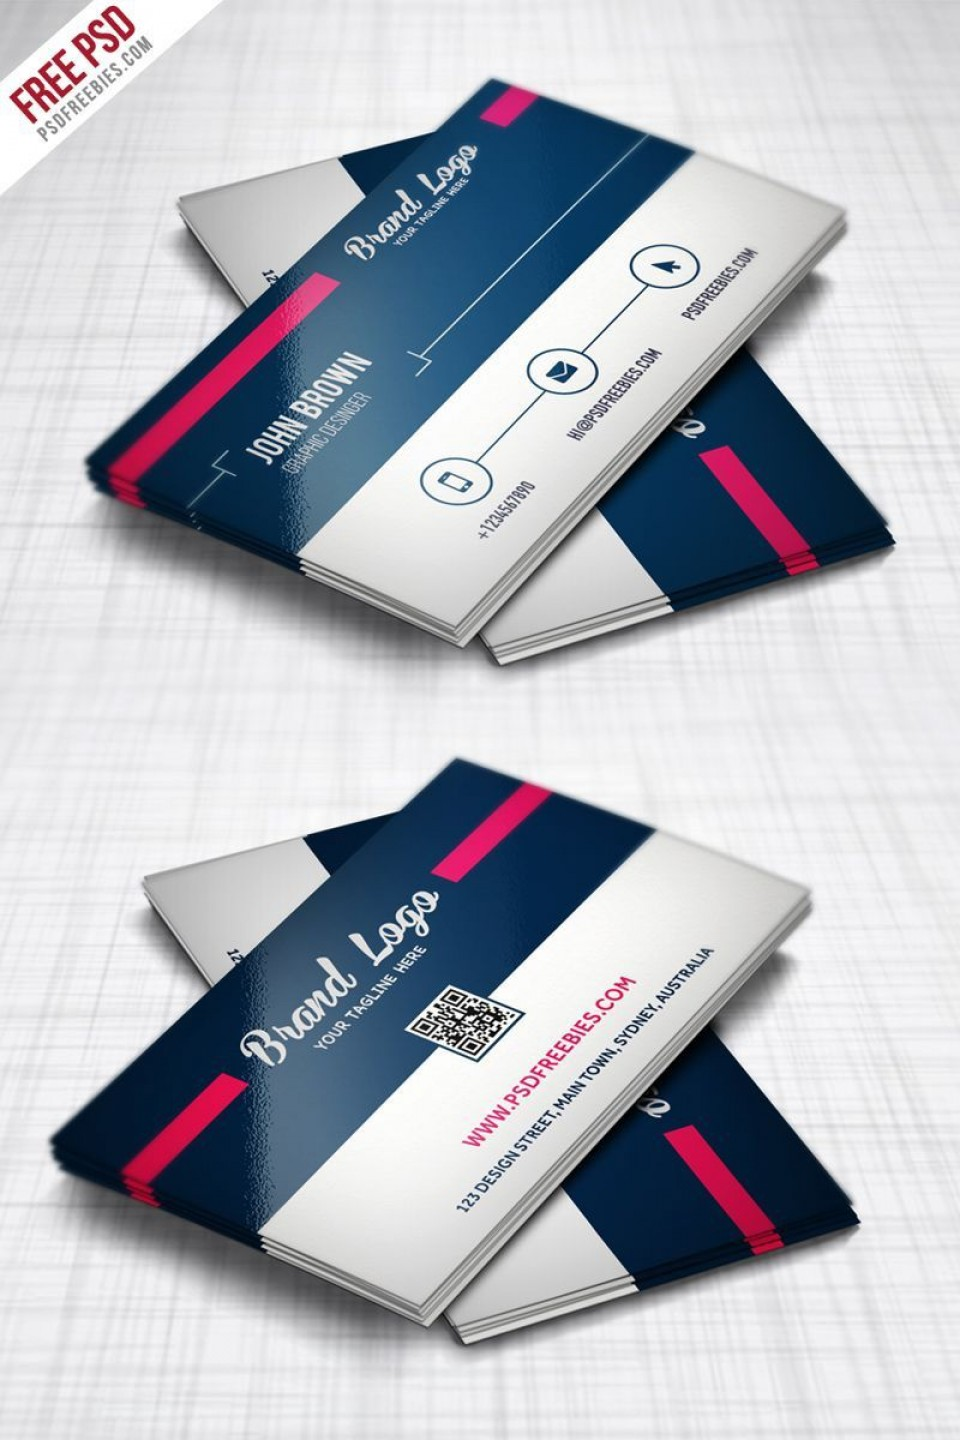 007 Exceptional Free Adobe Photoshop Busines Card Template Idea  Download960